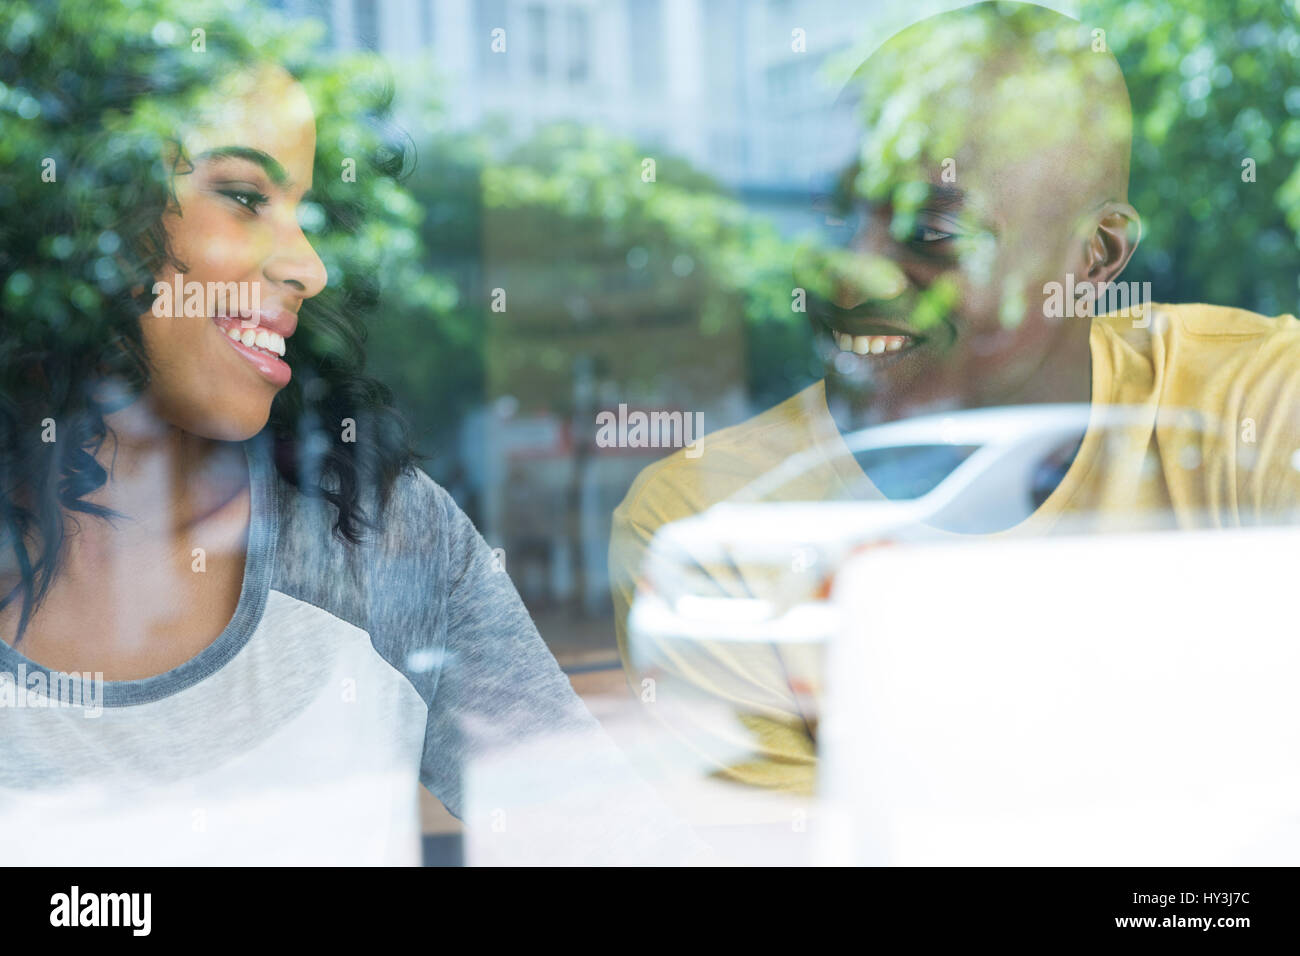 Loving young couple looking at each other in coffee house seen through window - Stock Image